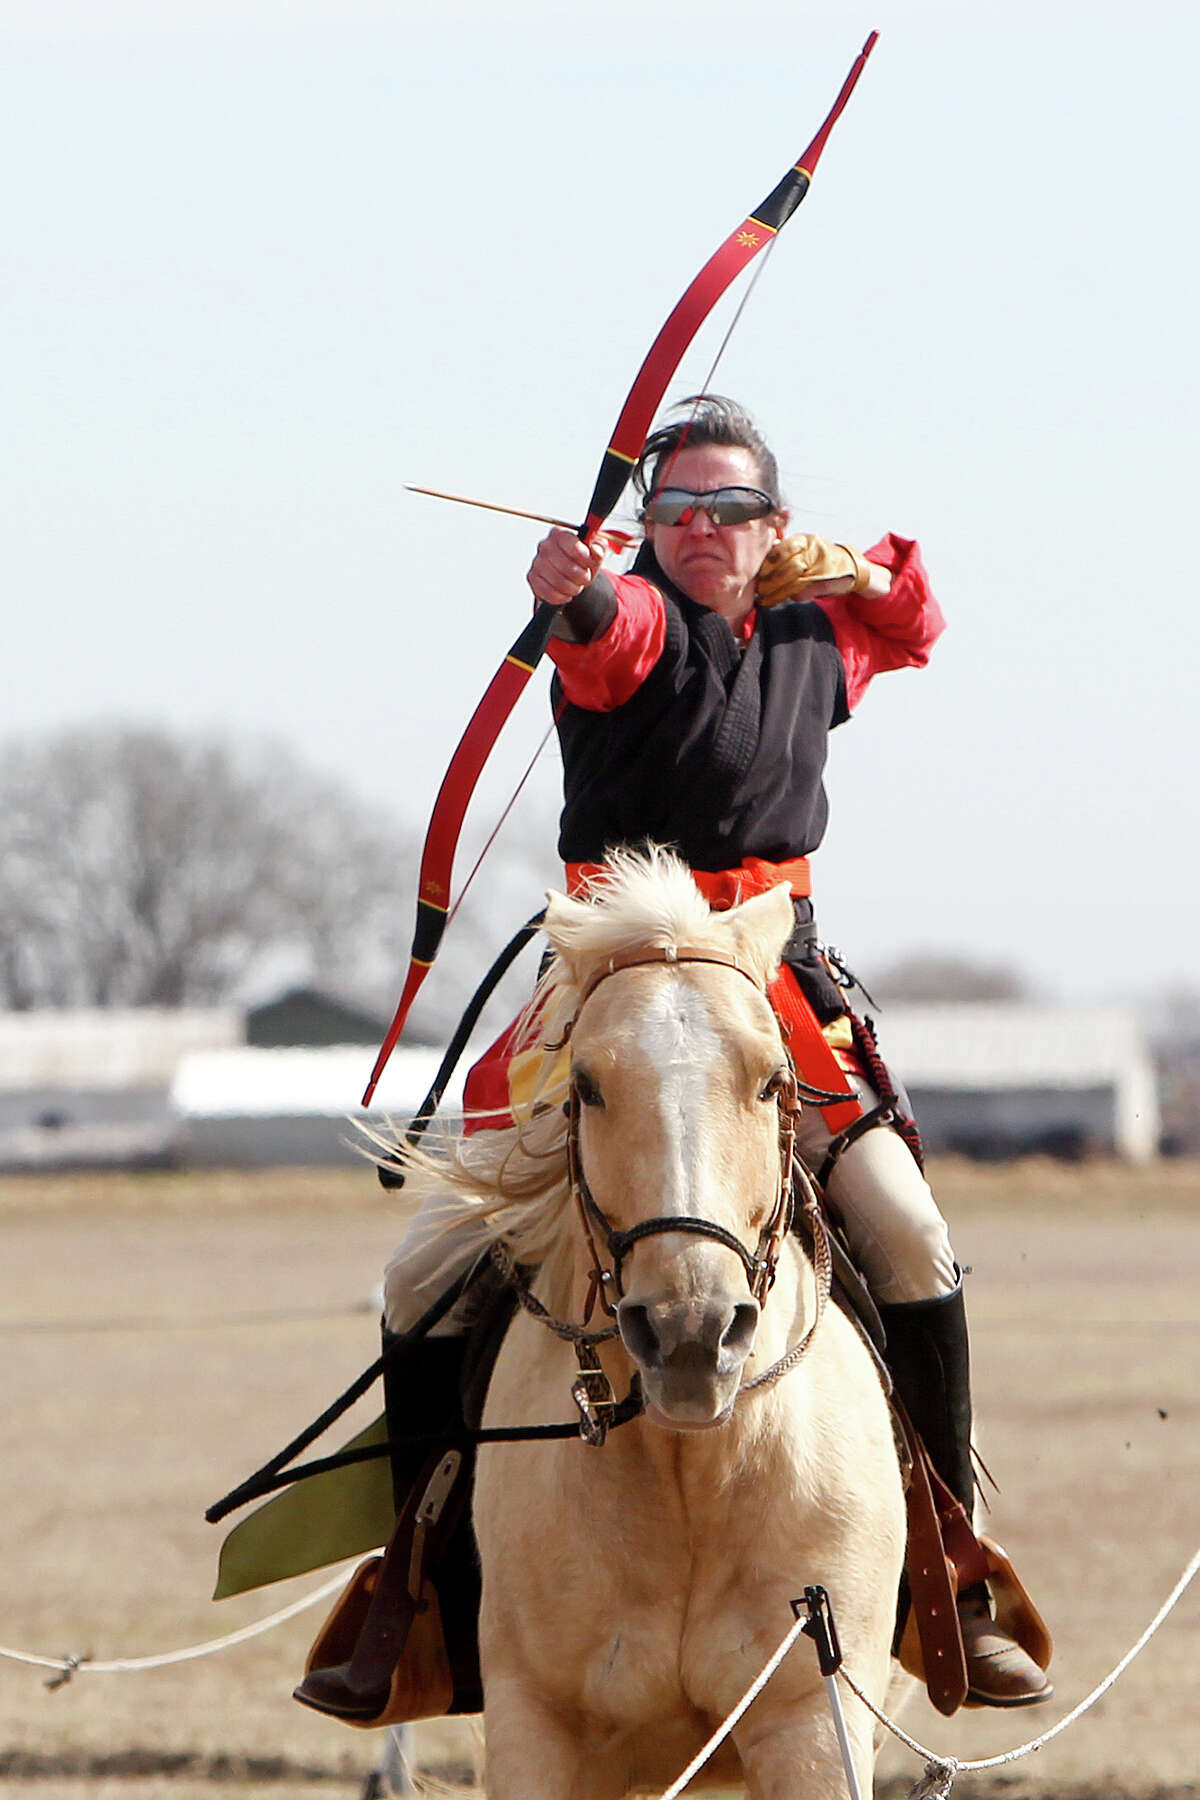 De Anne Ienna shoots at a target while atop her Palomino during a Mounted Archery Association of the Americas training session for the Bi-Continental Championship at 777 Three Mile Creek in New Braunfels on Saturday, Jan. 25, 2014. Photo by Marvin Pfeiffer / Prime Time Newspapers